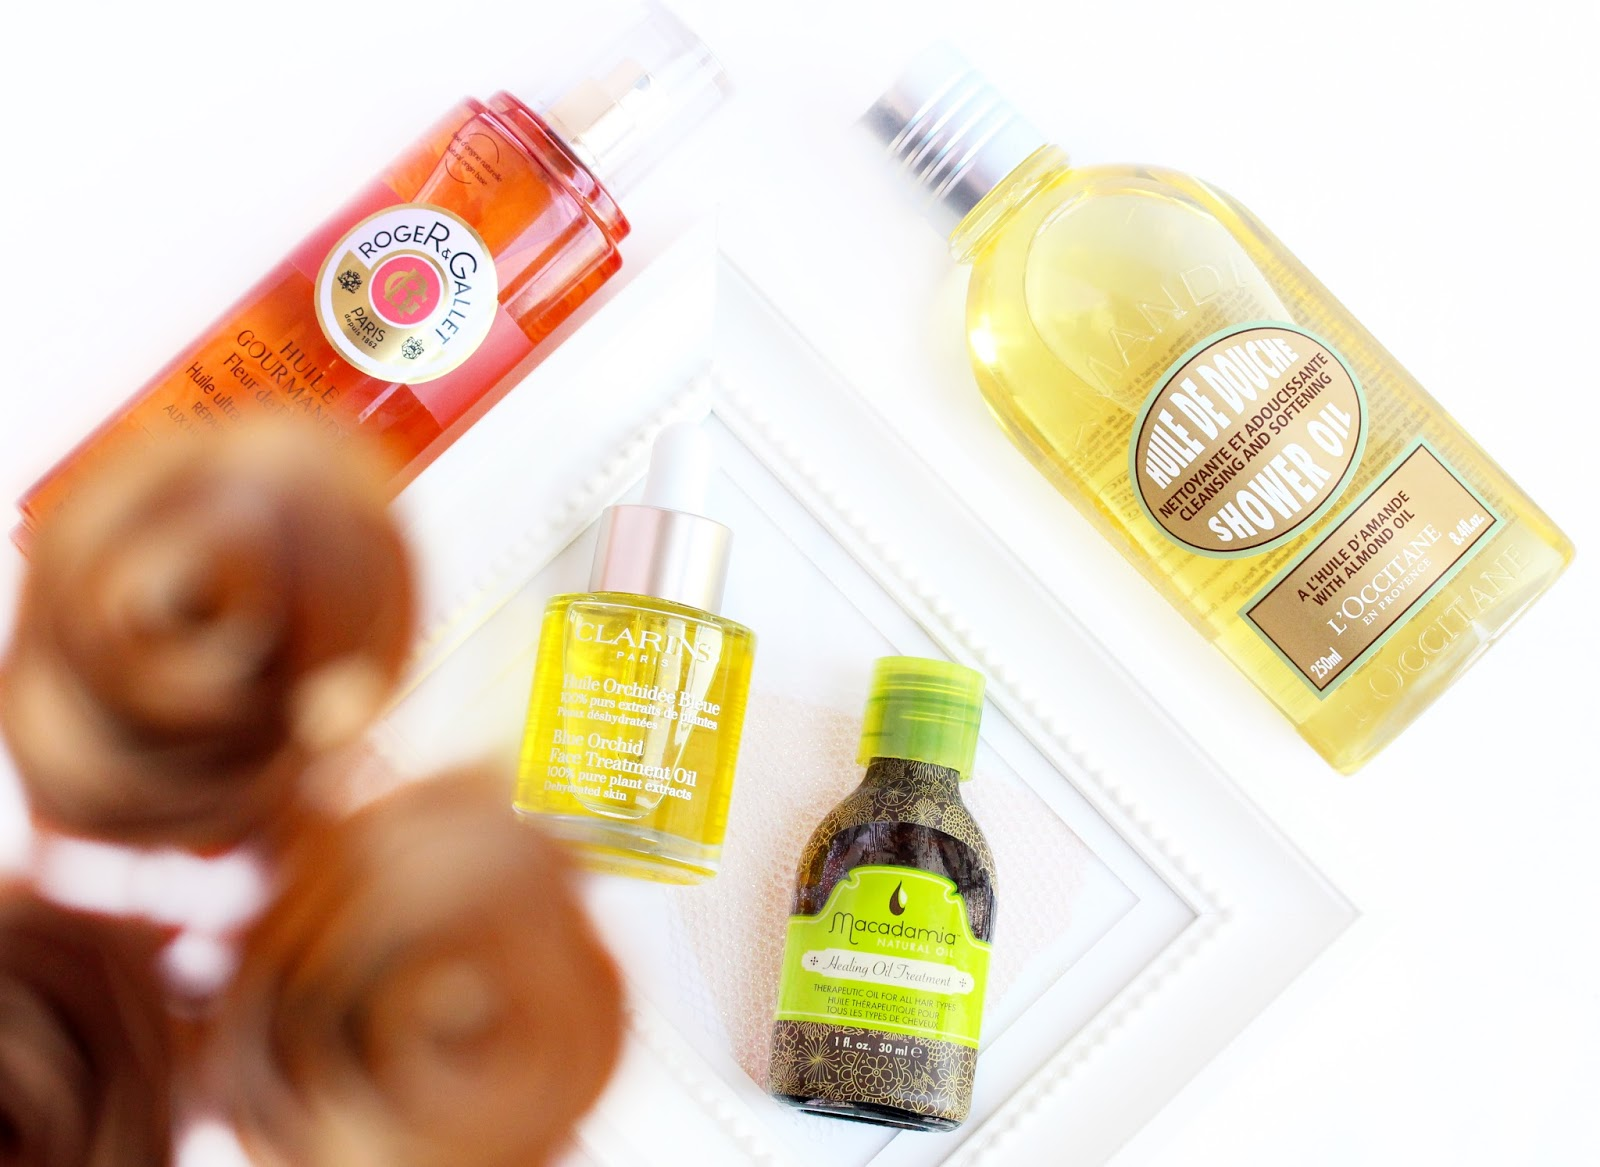 Beauty Oils: Macadamia Healing Treatment Oil, Roger&Gallet Body and Hair Oil, Clarins Blue Orchid Treatment Oil, L'Occitan Almond Shower Oil